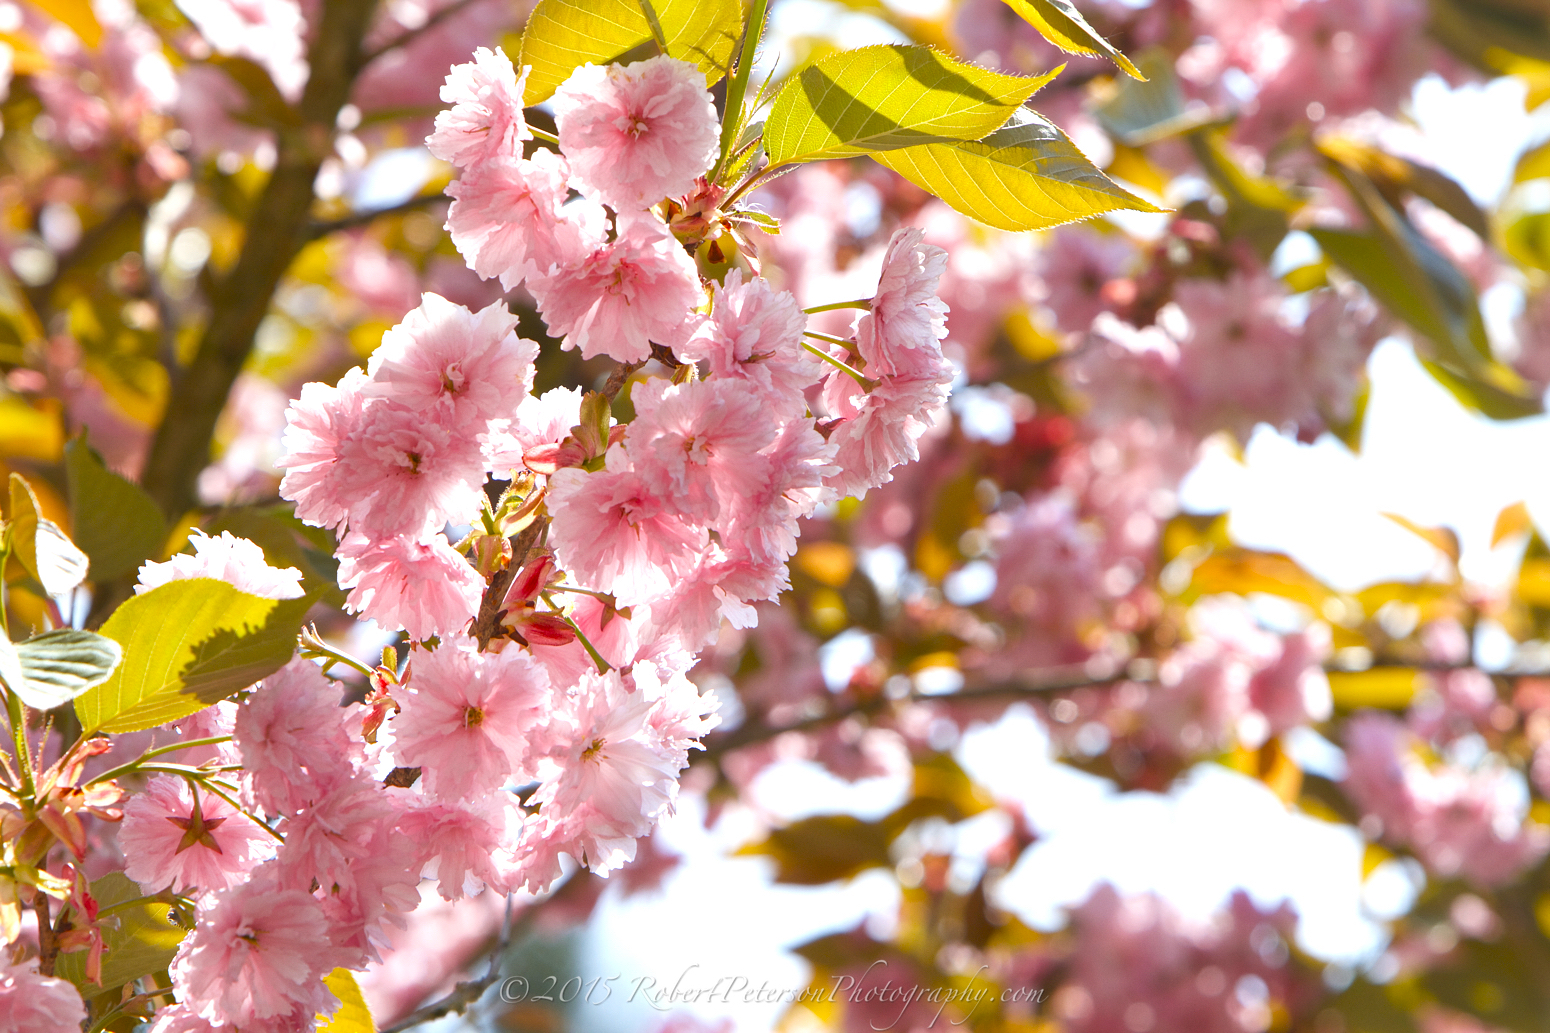 2015-04-24 Pink Blossom Robert Peterson Photography-06 1550pxRPP